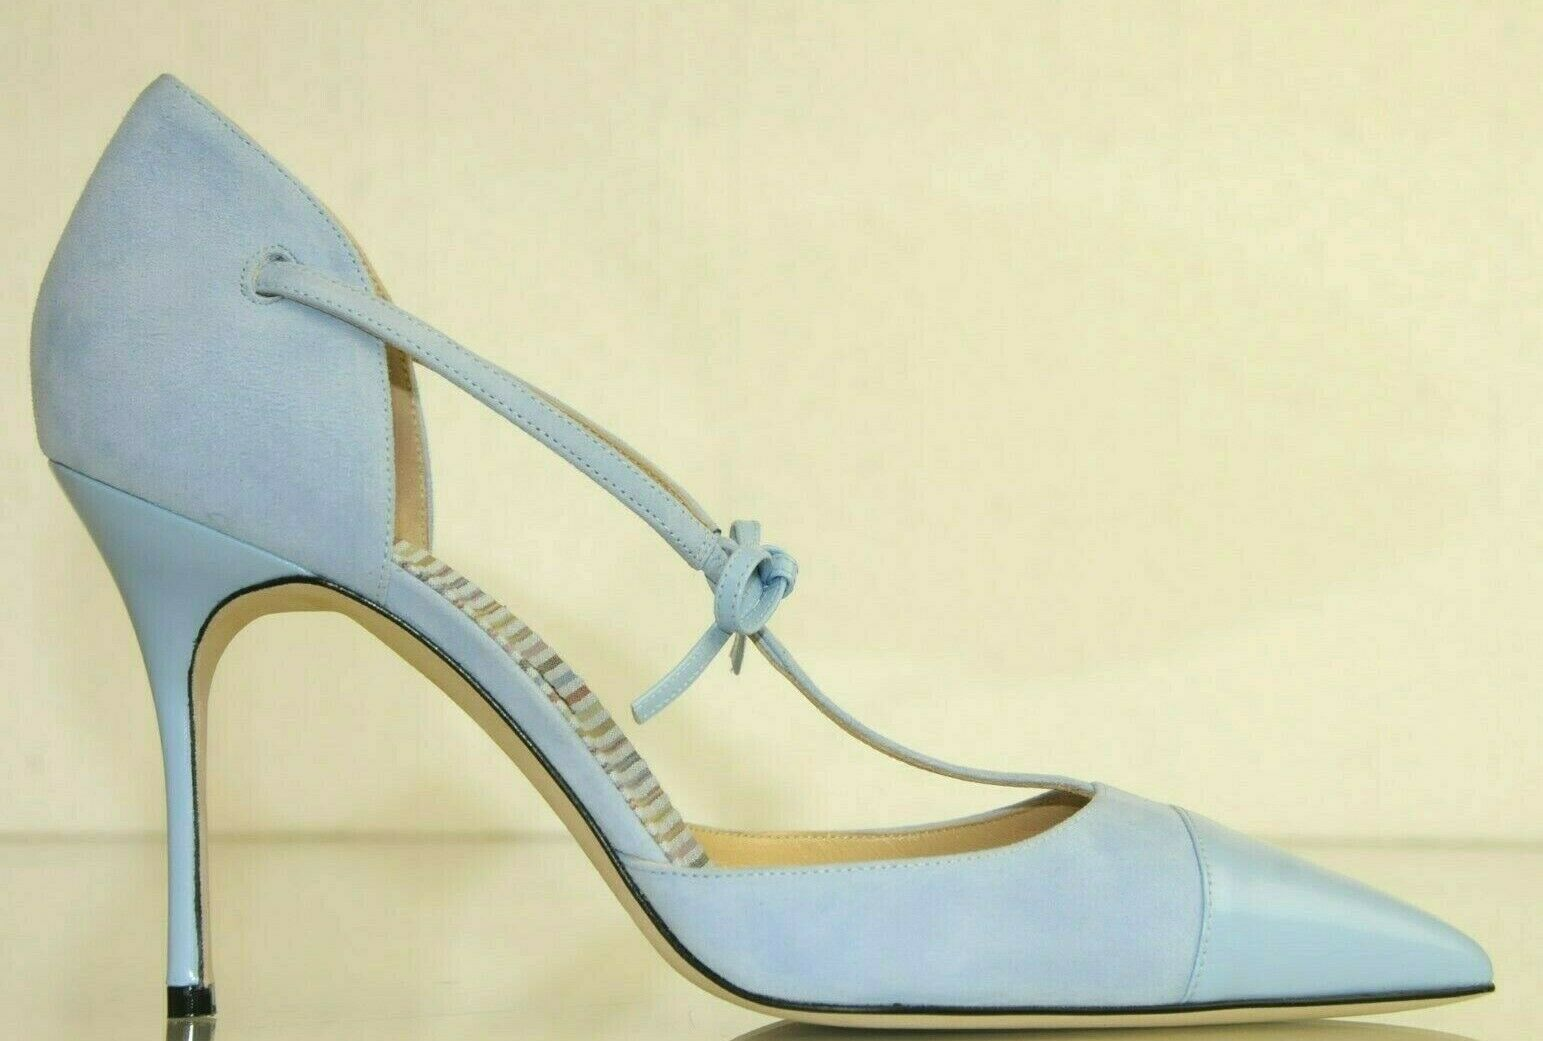 865 New Manolo Blahnik PARIGATAMA bluee Suede Leather BB Ankle Strap shoes 41